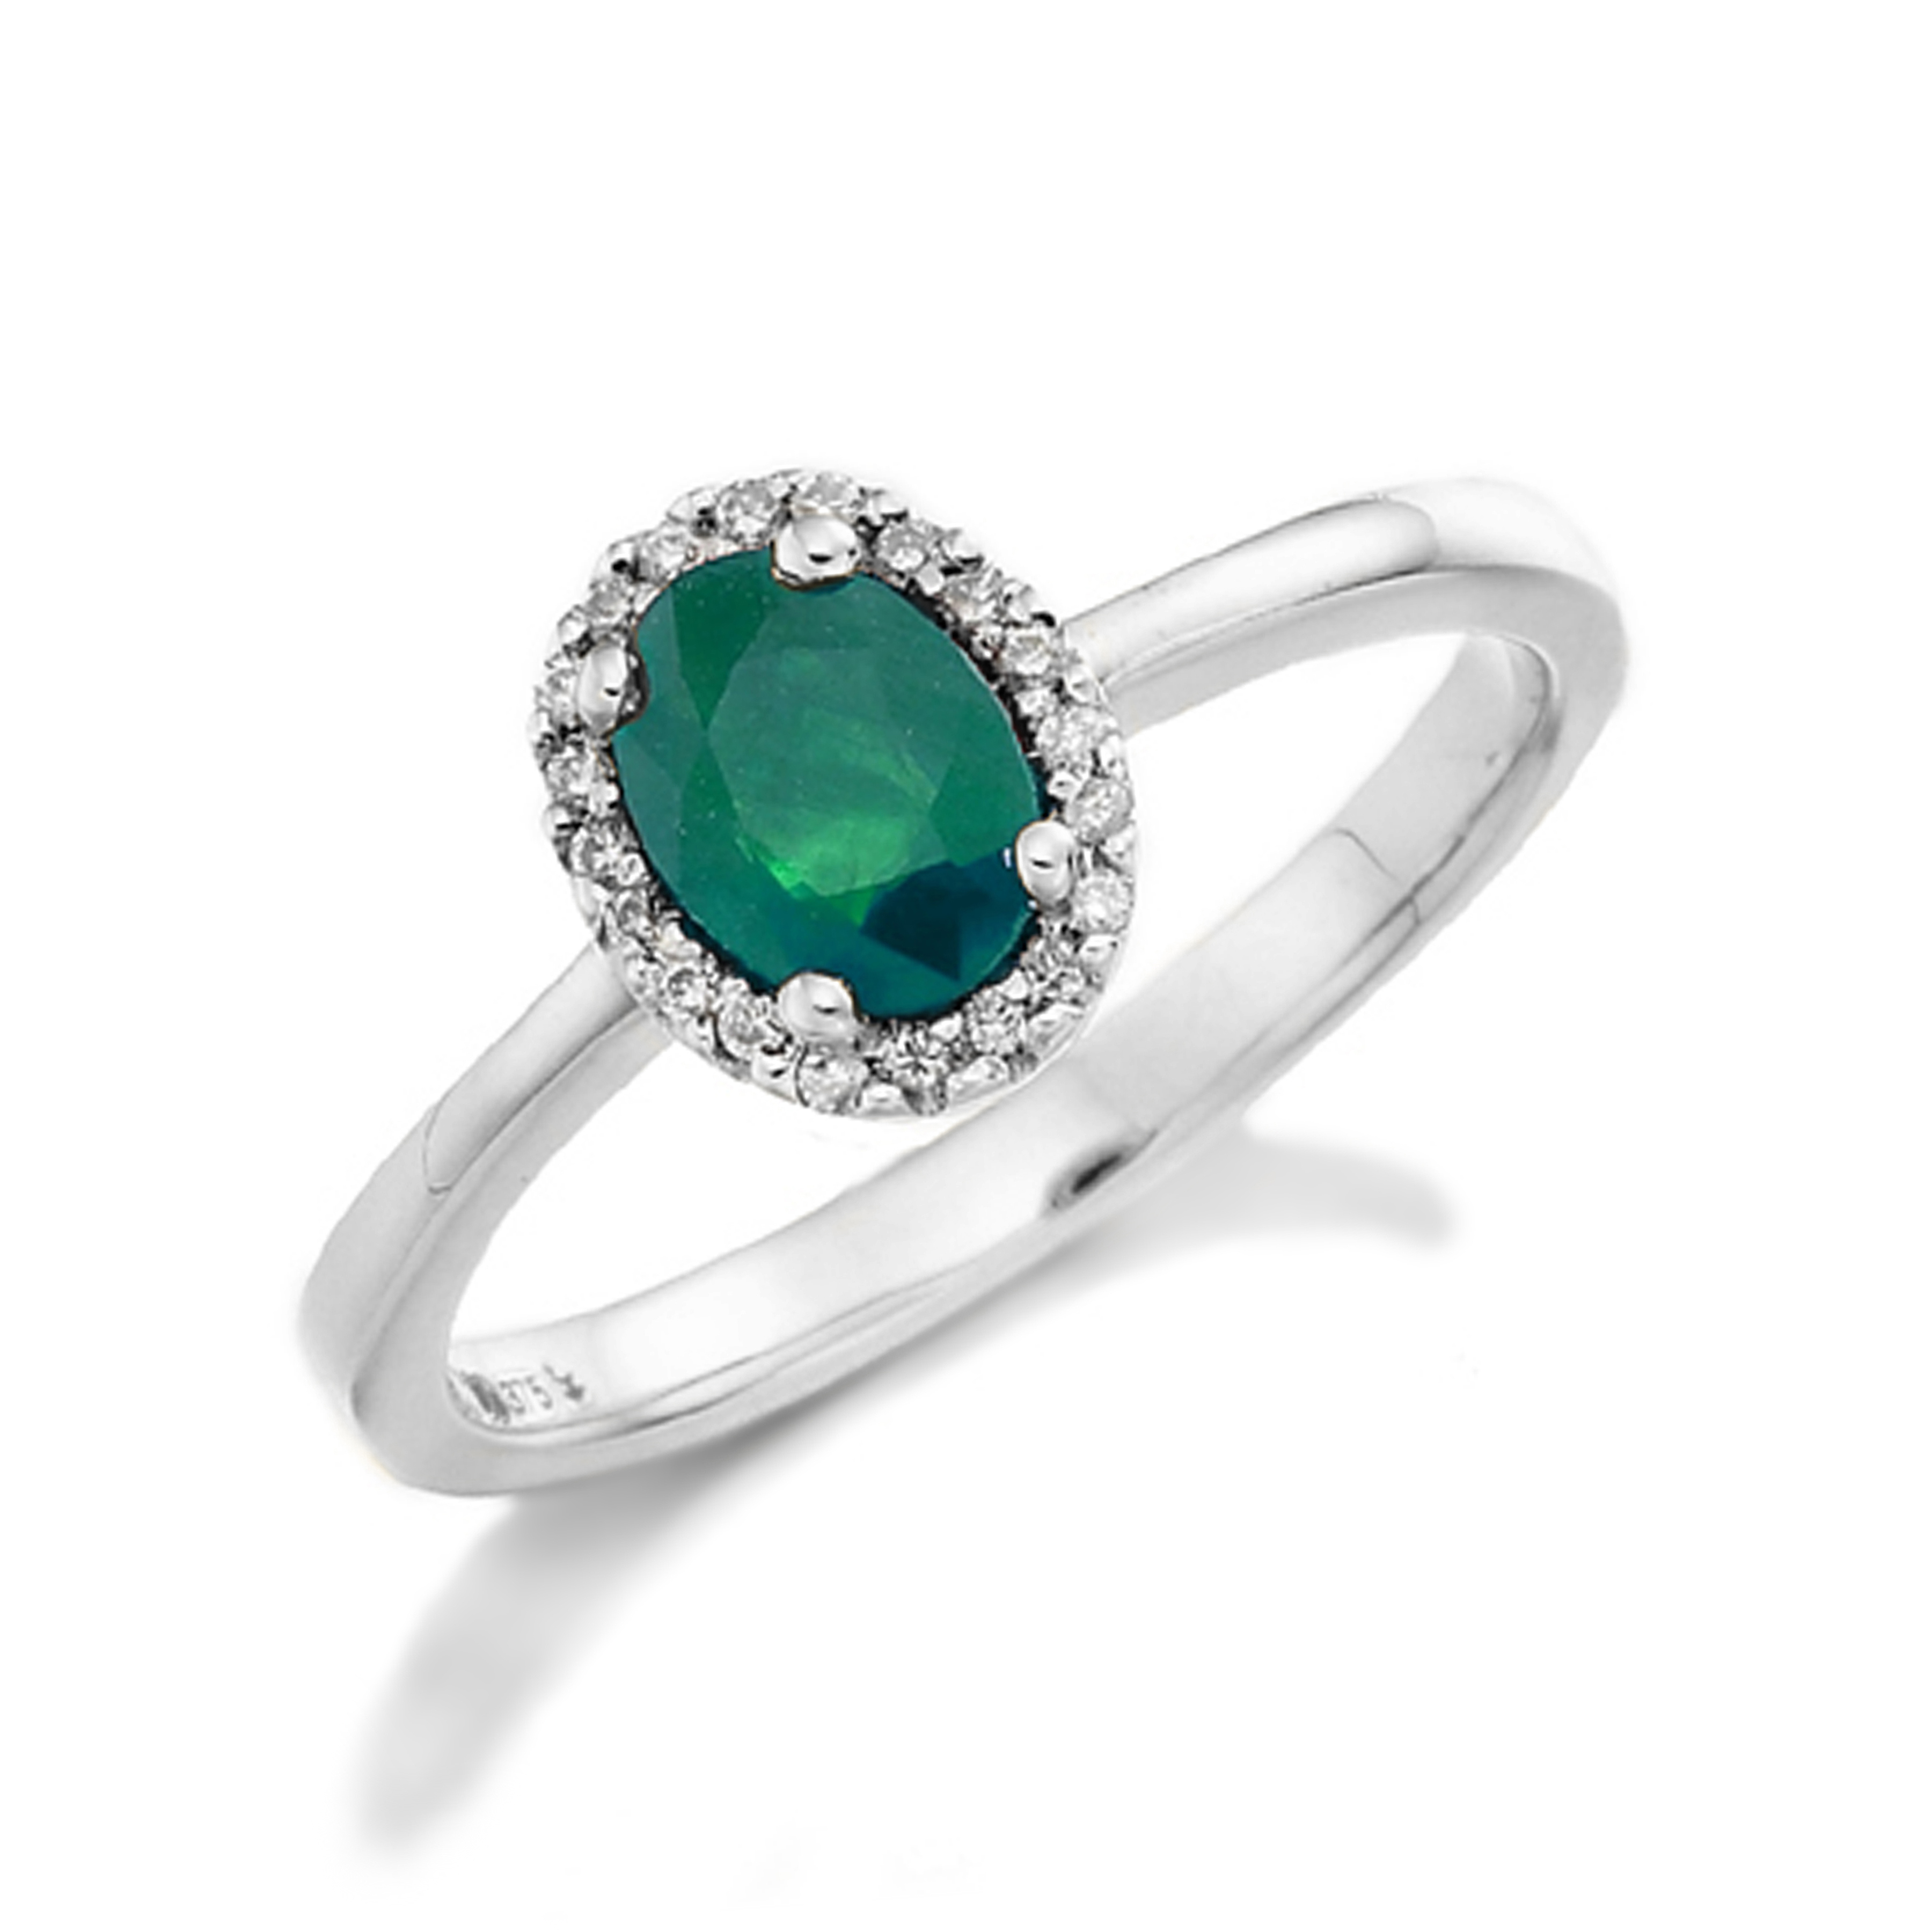 Radiant Cut Milligrain Edge Shoulder Set Diamond Engagement Ring